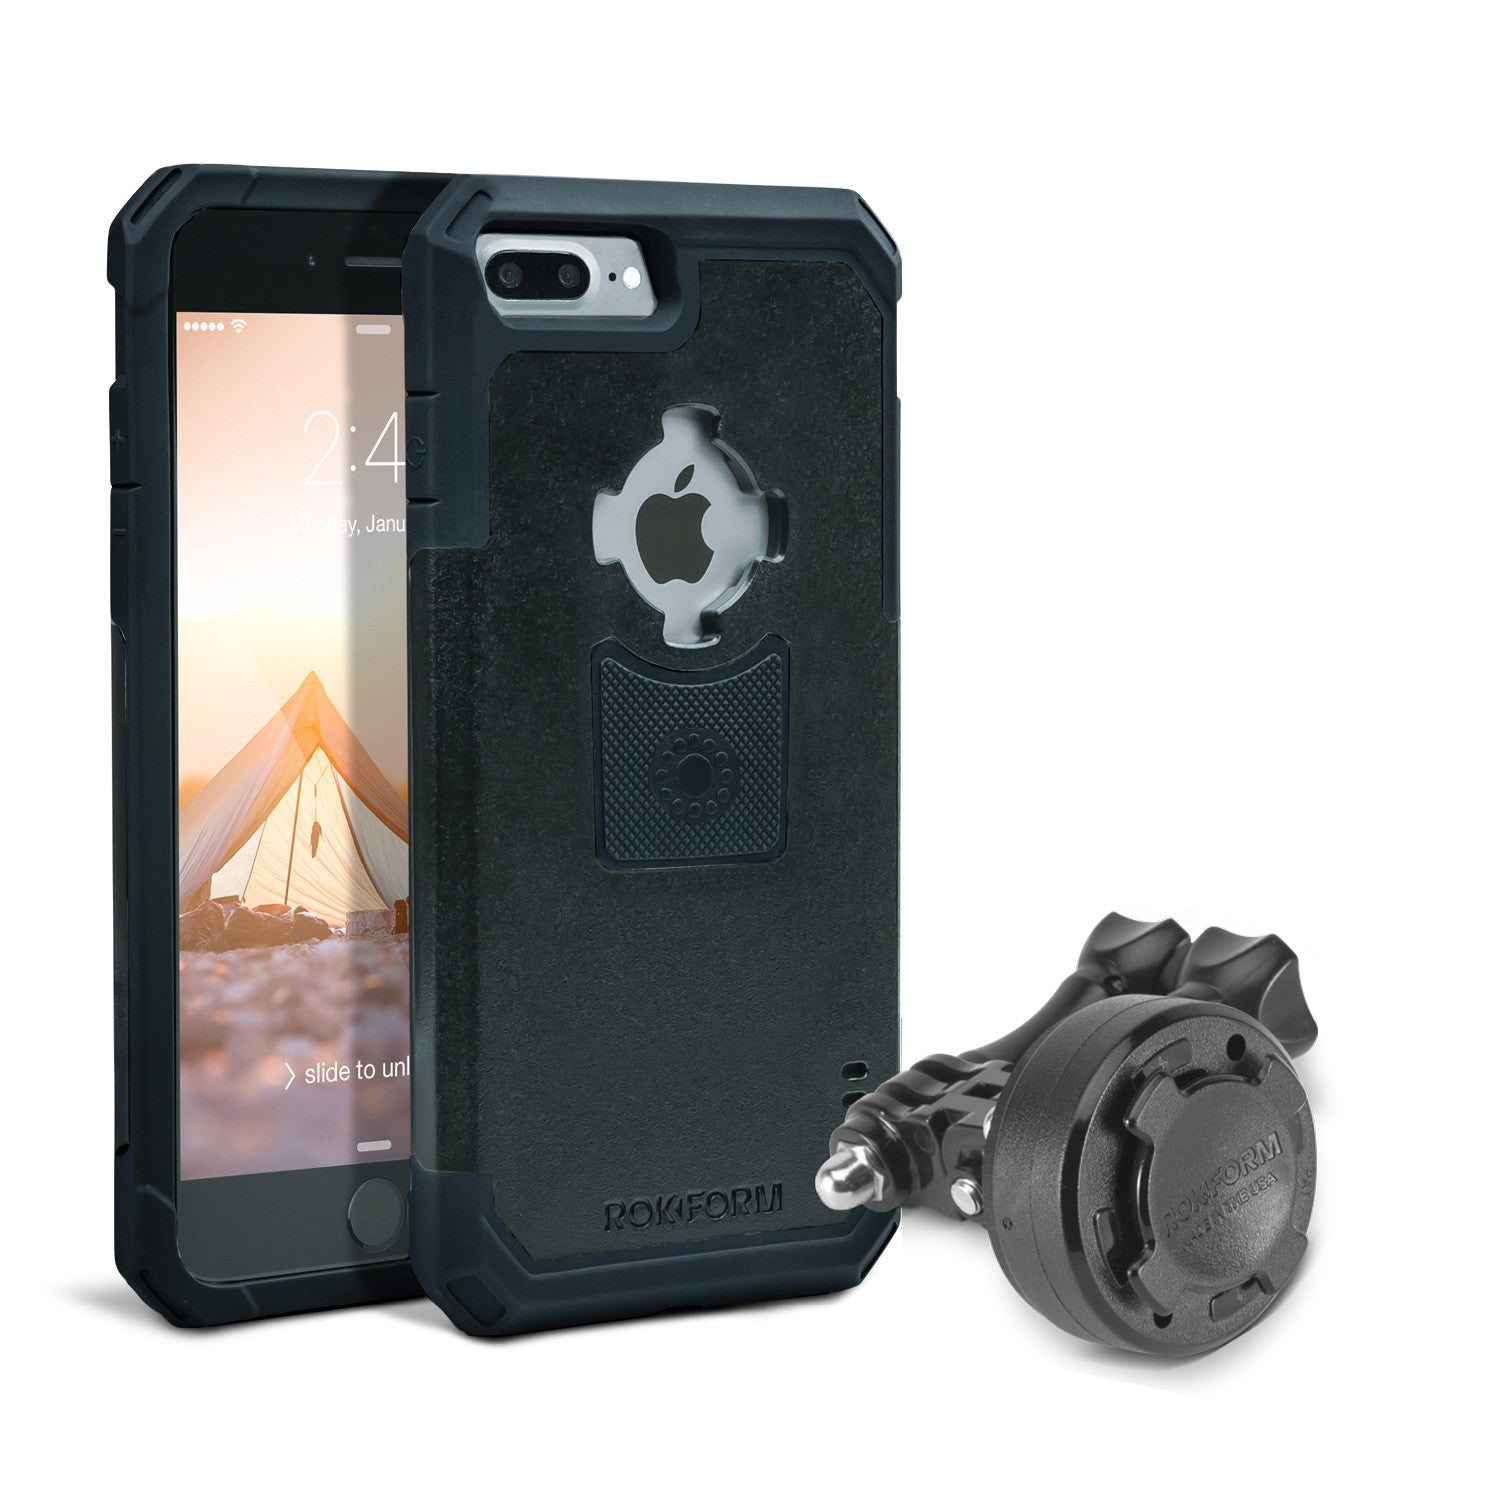 iphone mount. gopro mount kit + iphone 7 plus case iphone v